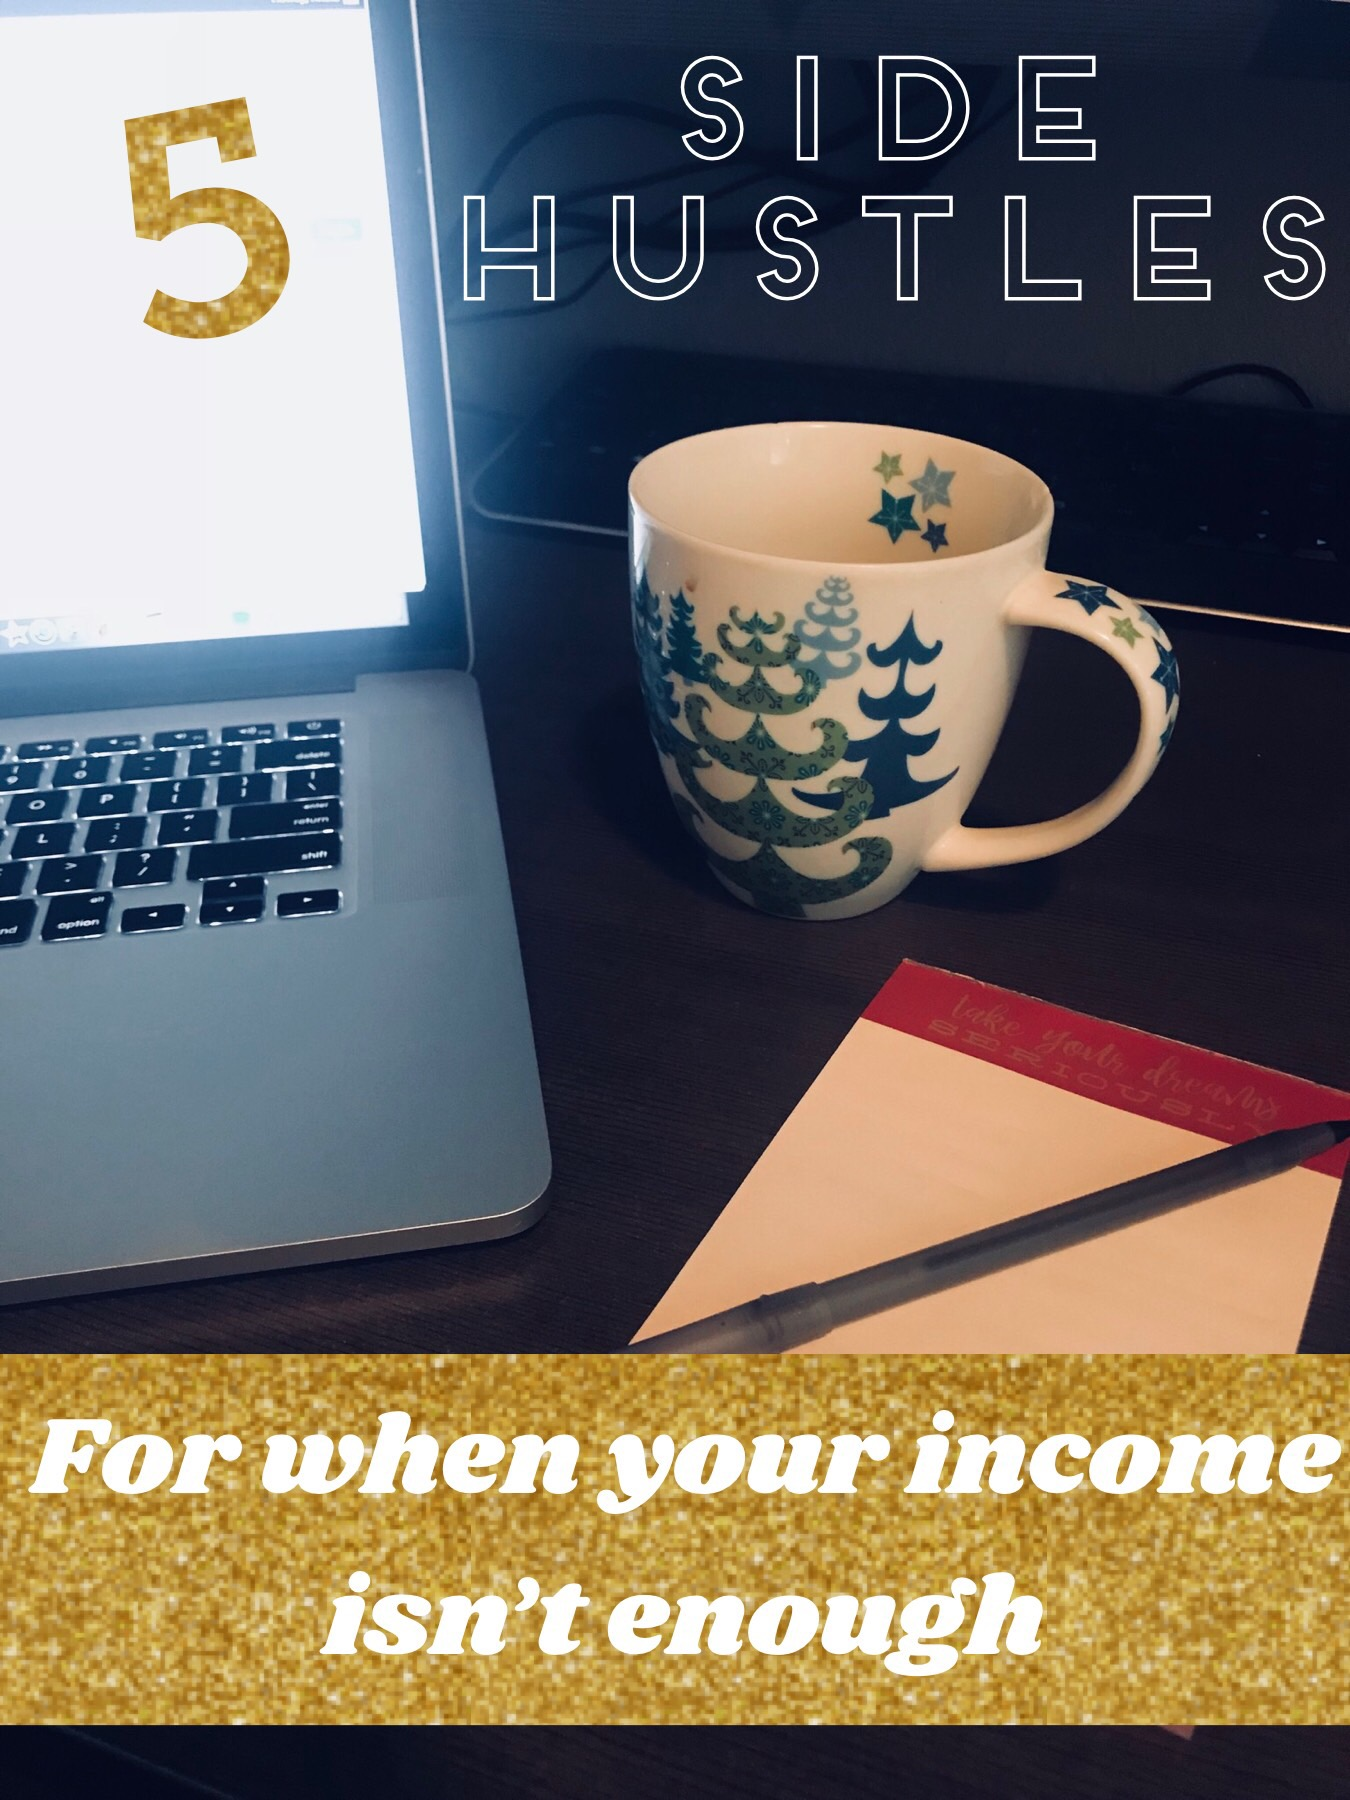 5 side hustle ideas when your income isn't enough